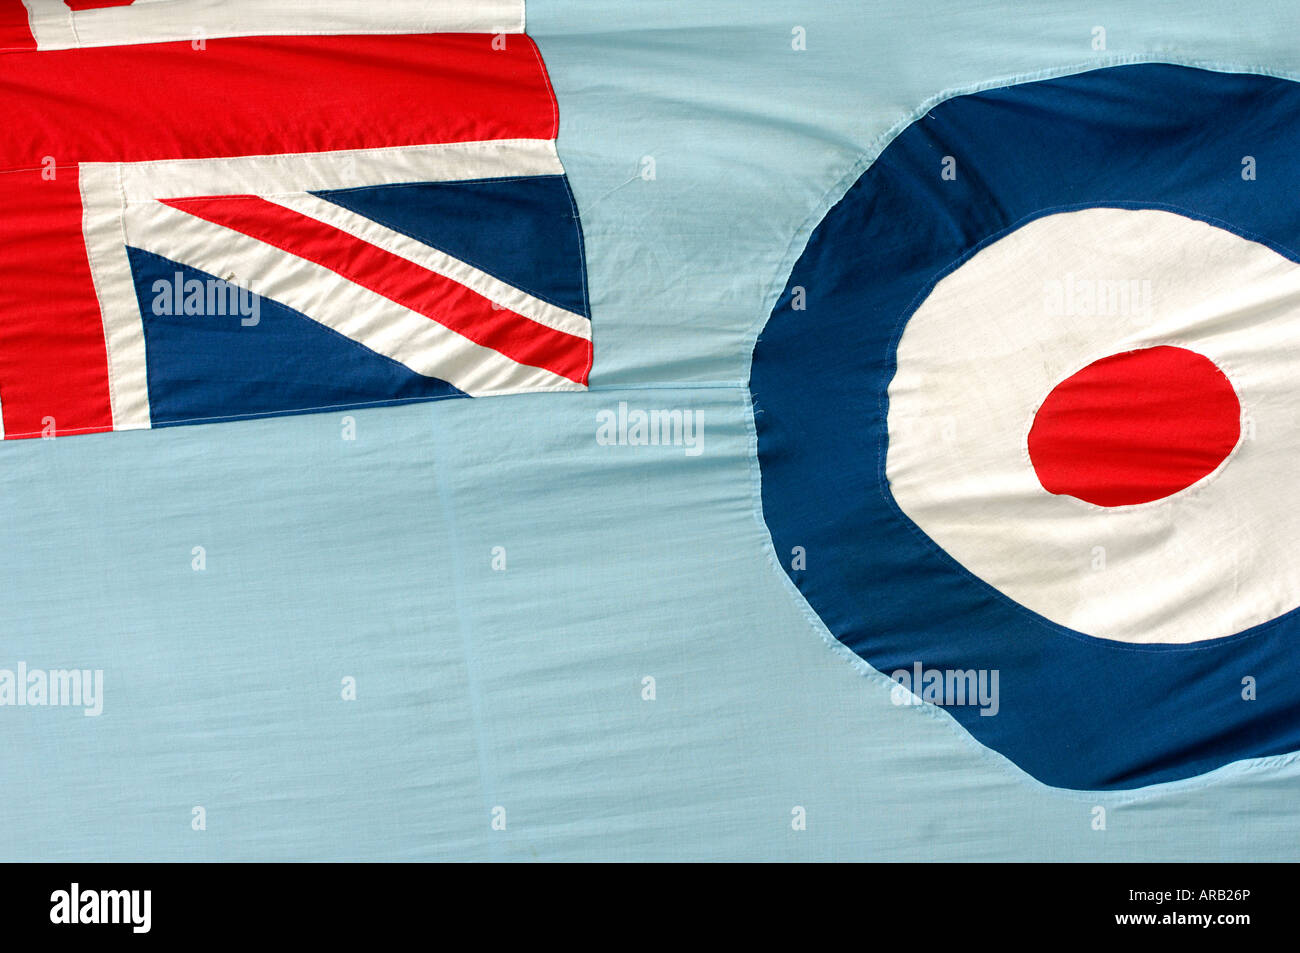 the flage of the royal air force showing union jack and roudel in